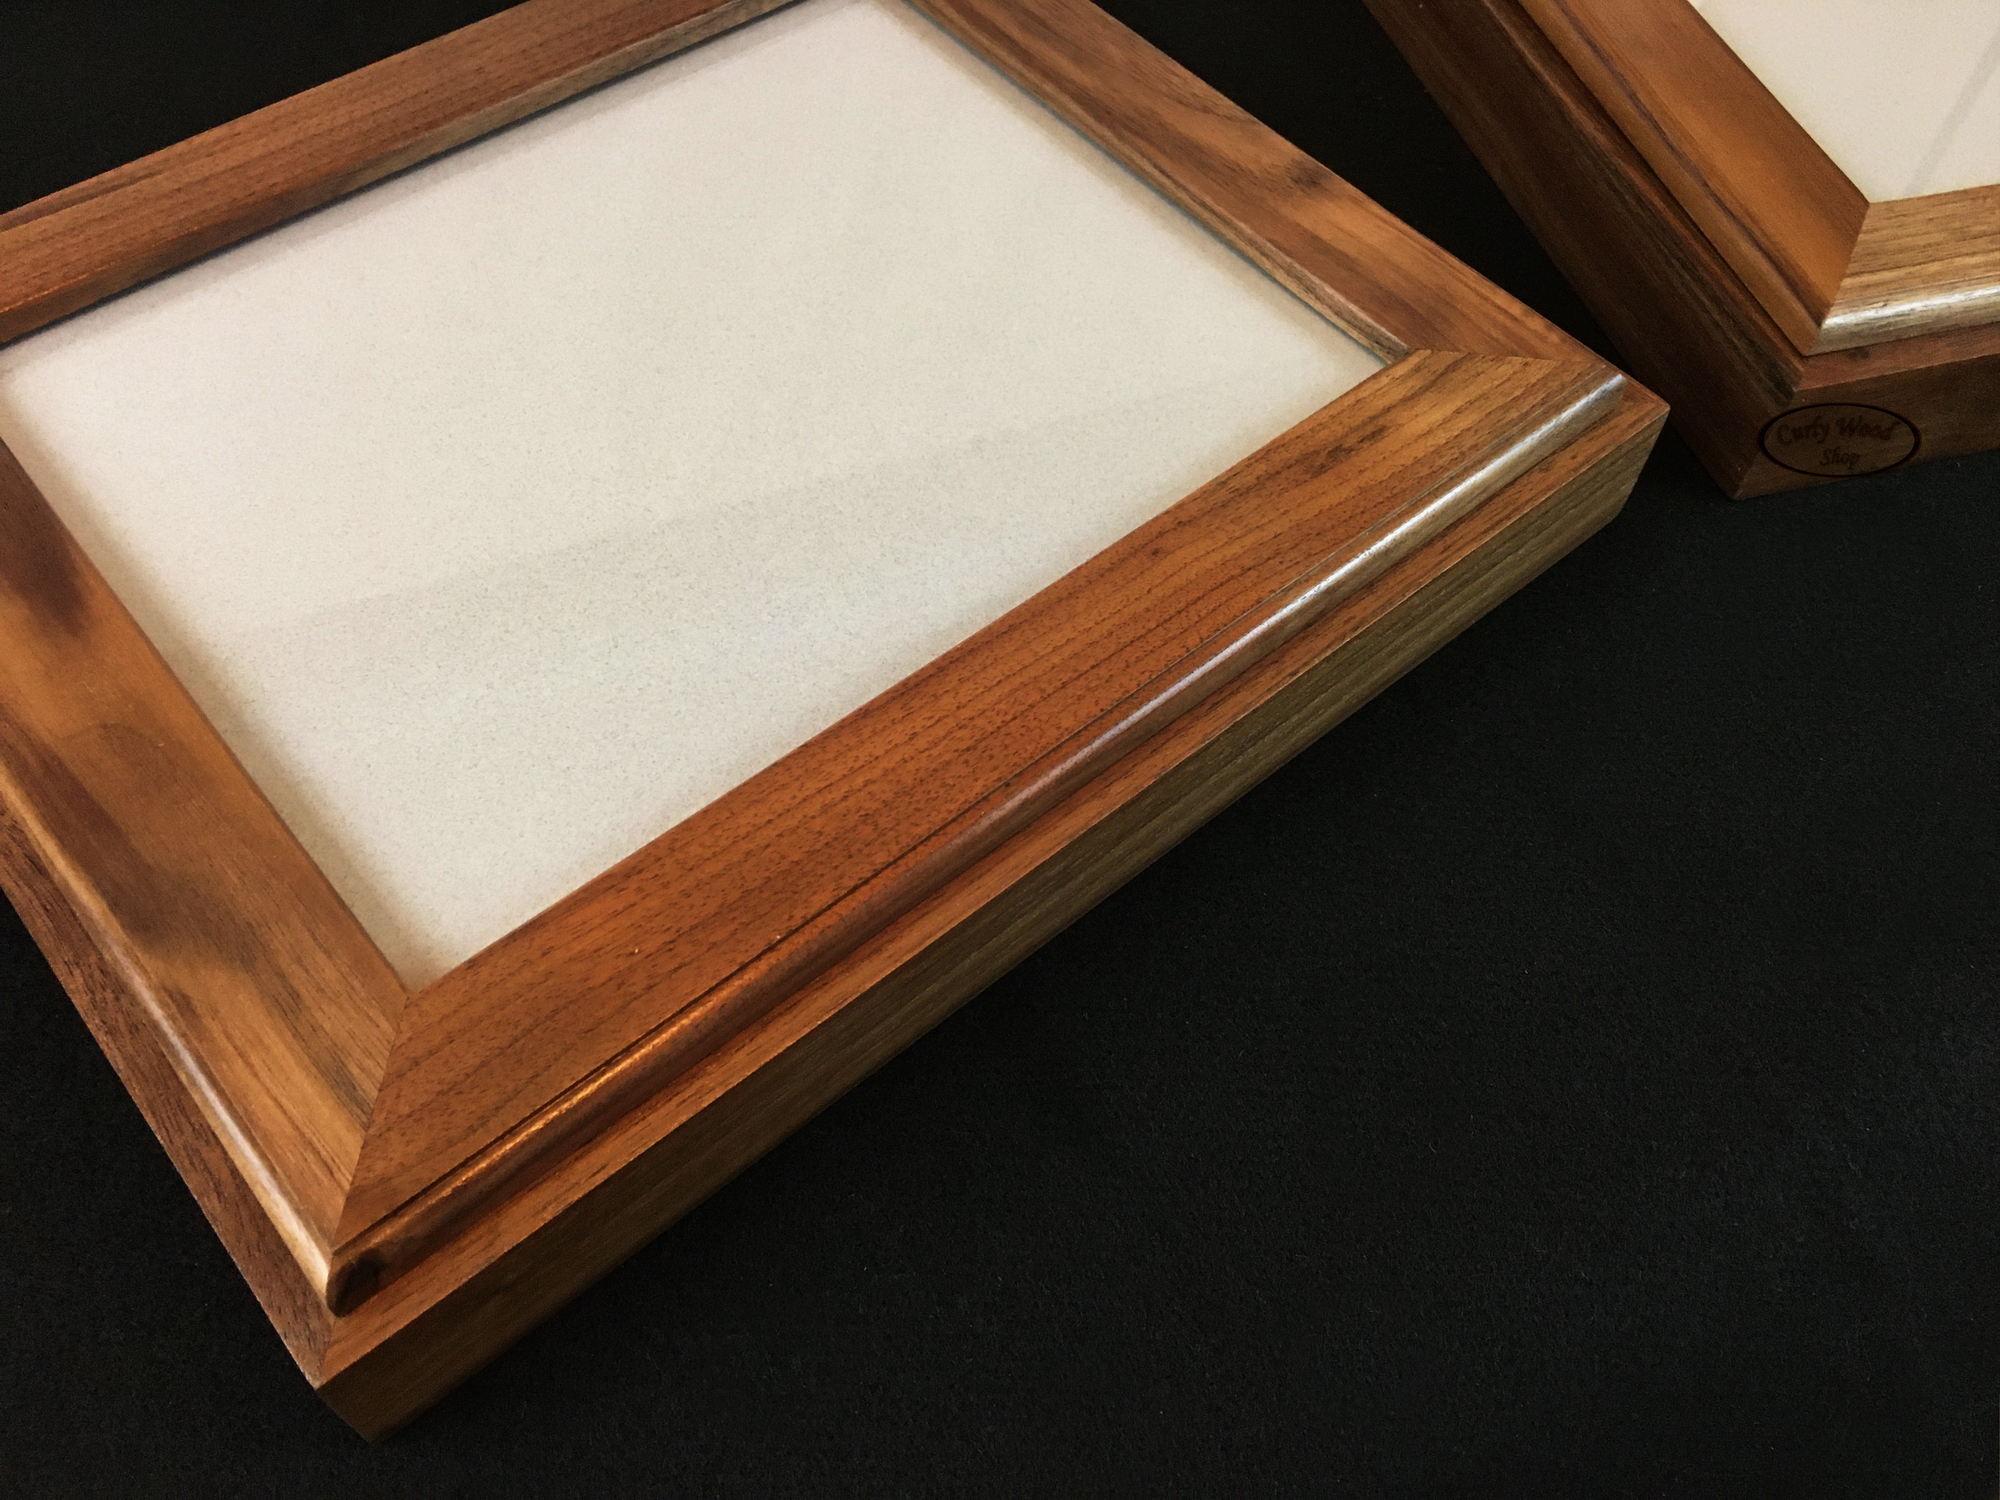 Concealment frame in Walnut-008-concealment-frames-walnut.jpg